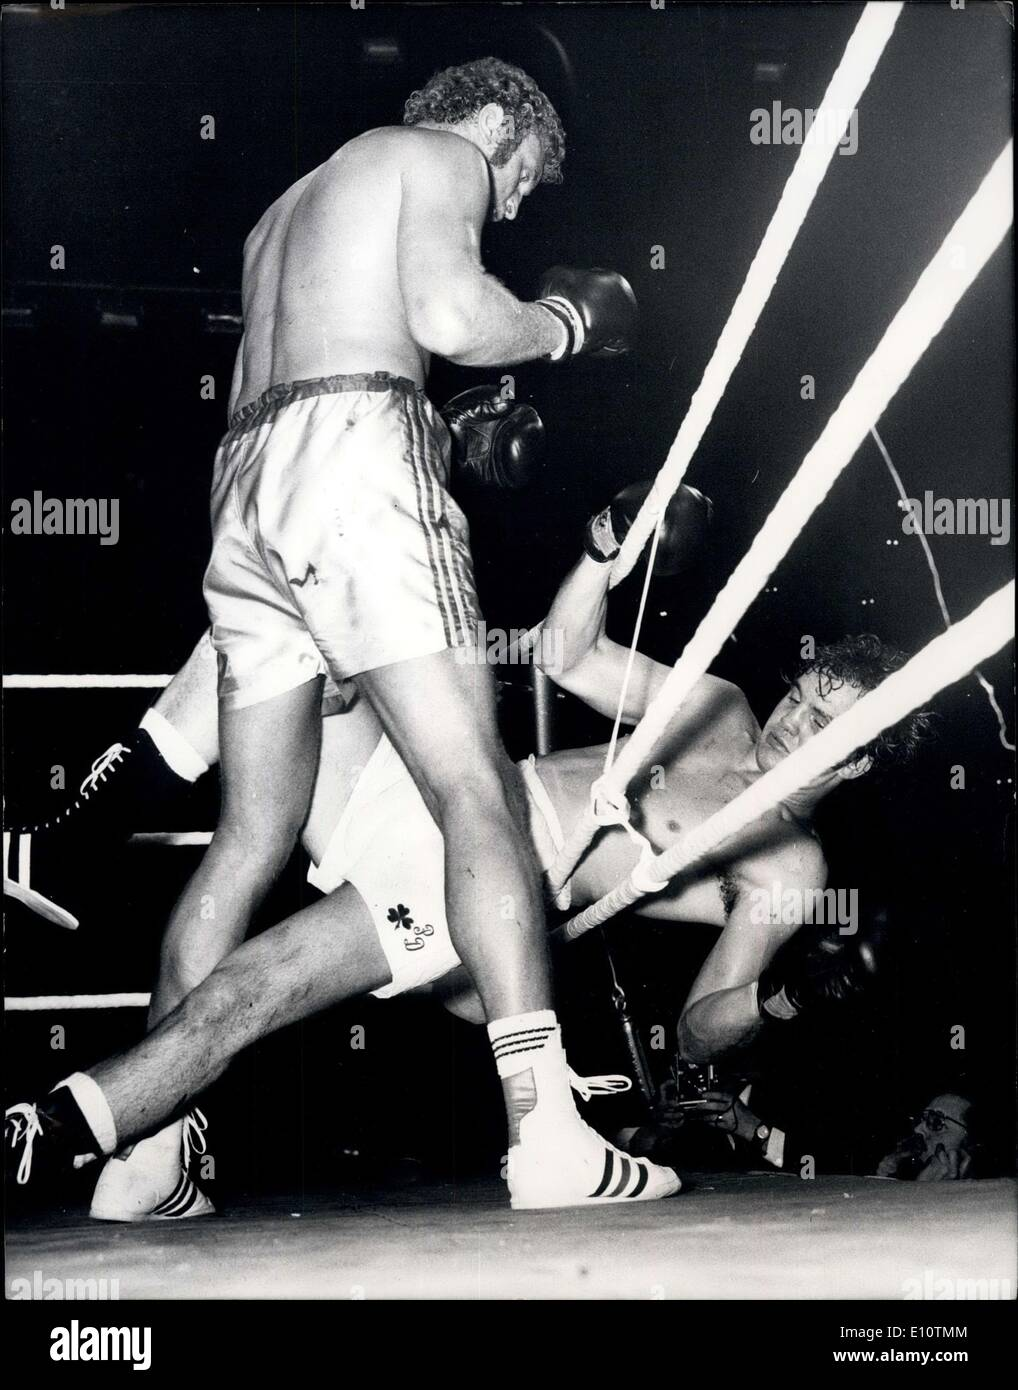 Mar. 13, 1974 - Boxing at the Empire Pool Wembley: Heavyweight's contest. Joe Bugner (Britain) v. 'Irish' Pat Duncan (USA) Photo shows Britain's Joe Bugner stands over 'Irish' Pat Duncan as he crashes through the ropes. - Stock Image